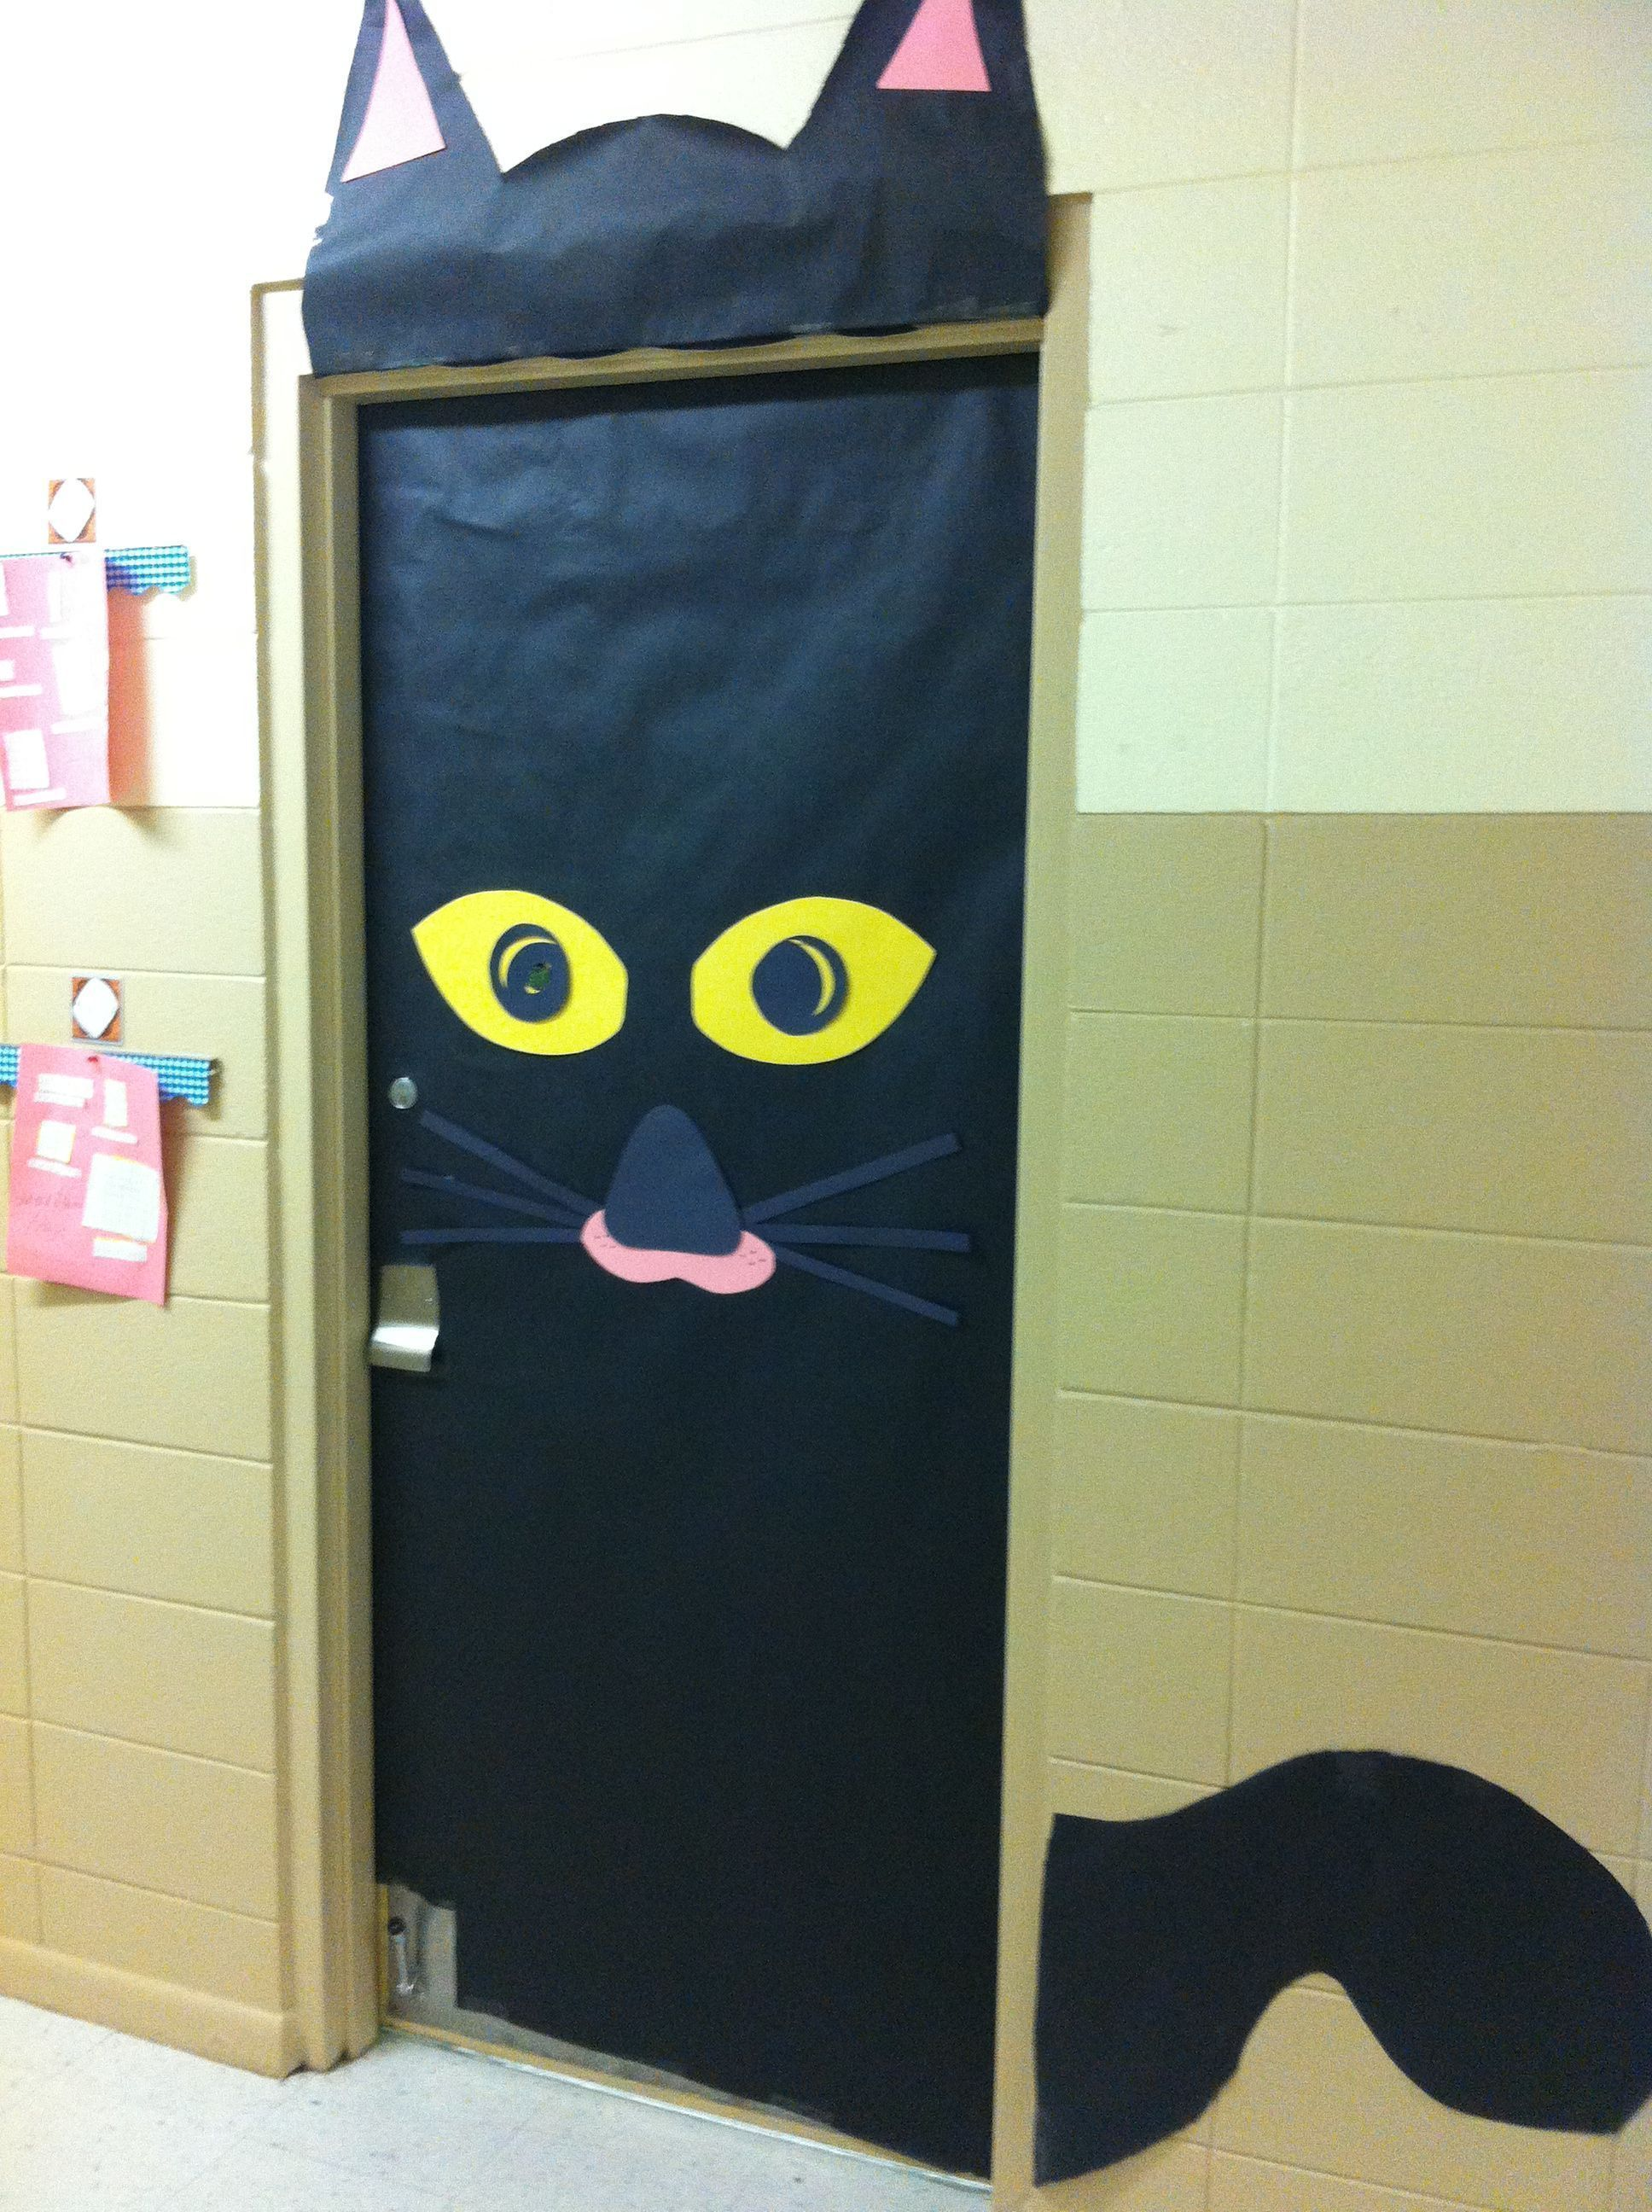 Halloween Classroom Door Blackcat Halloween Halloween Classroom #halloweenclassroomdoor Halloween Classroom Door Blackcat Halloween Halloween Classroom #halloweenclassroomdoor Halloween Classroom Door Blackcat Halloween Halloween Classroom #halloweenclassroomdoor Halloween Classroom Door Blackcat Halloween Halloween Classroom #halloweenclassroomdoor Halloween Classroom Door Blackcat Halloween Halloween Classroom #halloweenclassroomdoor Halloween Classroom Door Blackcat Halloween Halloween Classr #halloweenclassroomdoor